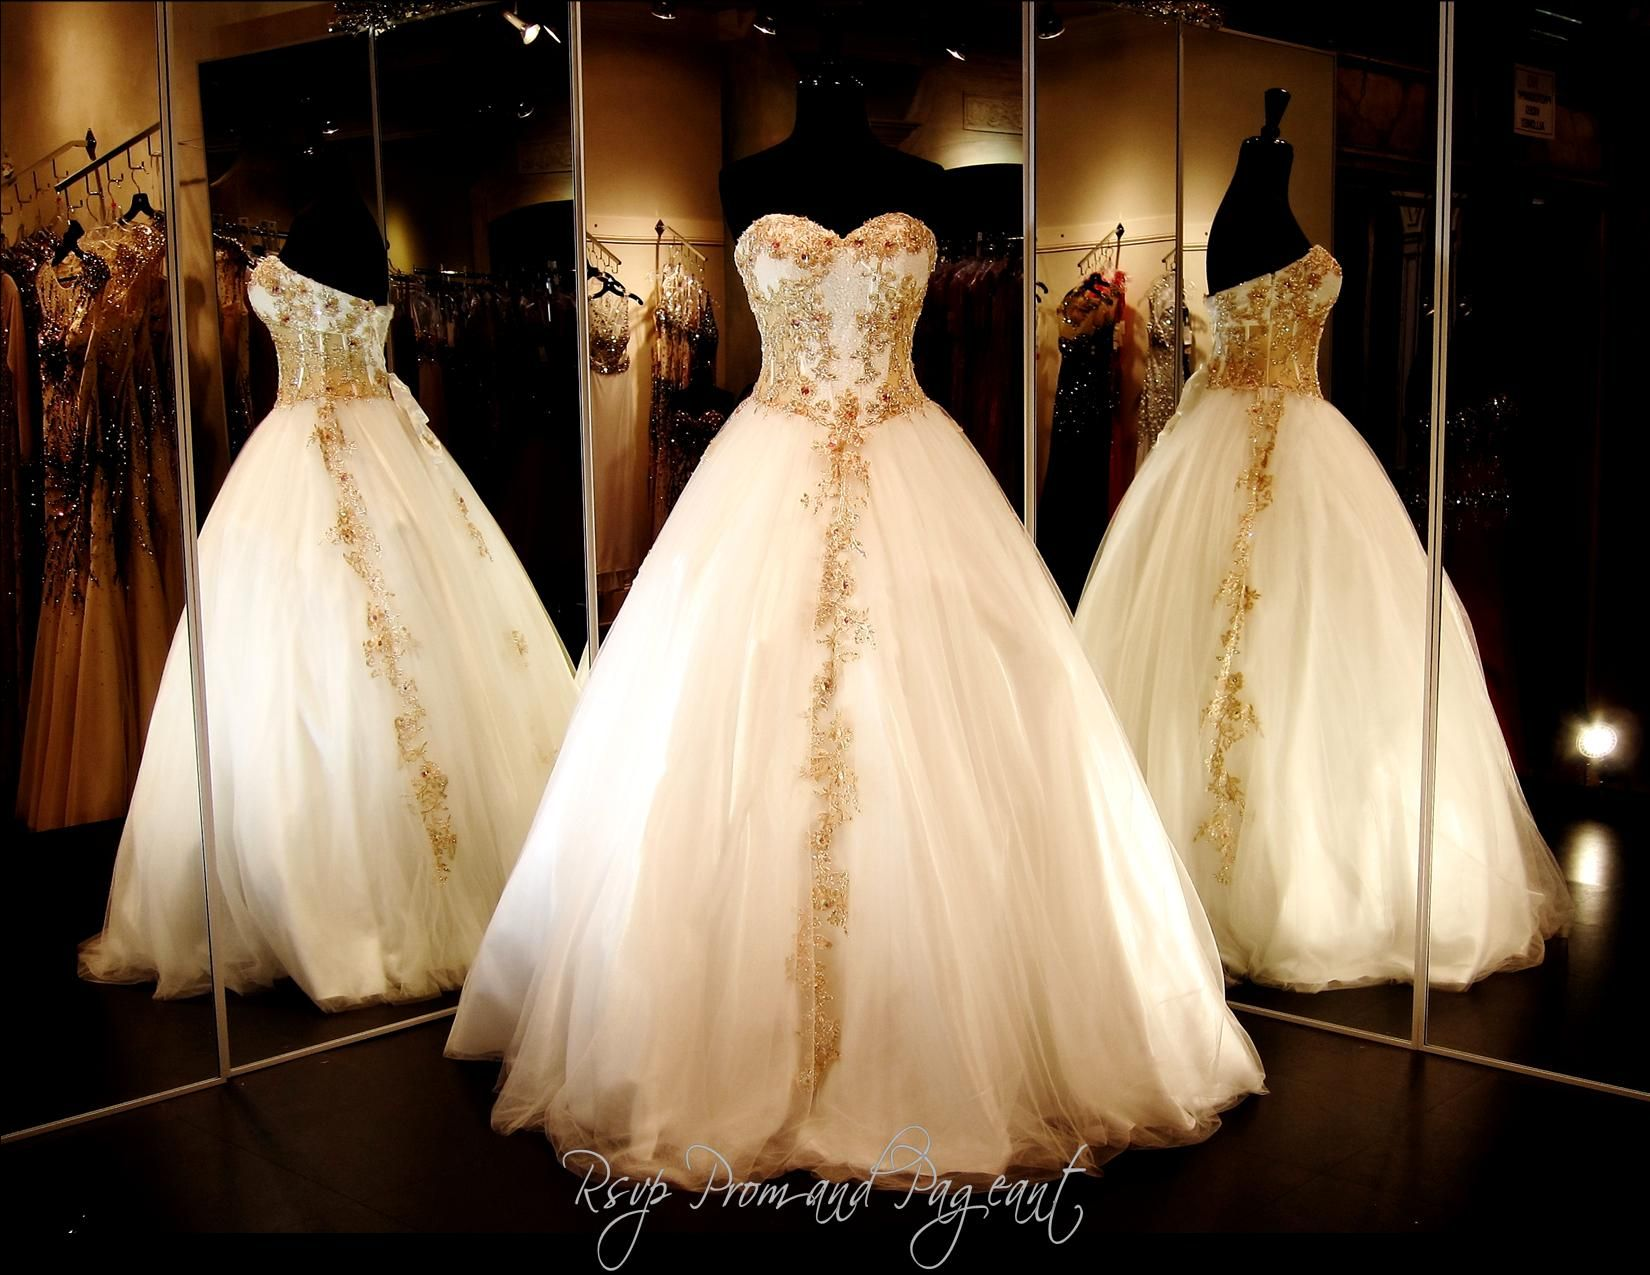 100VP0JHA0720595 WHITE/GOLD BALL GOWN This is a WINNER for SURE ...